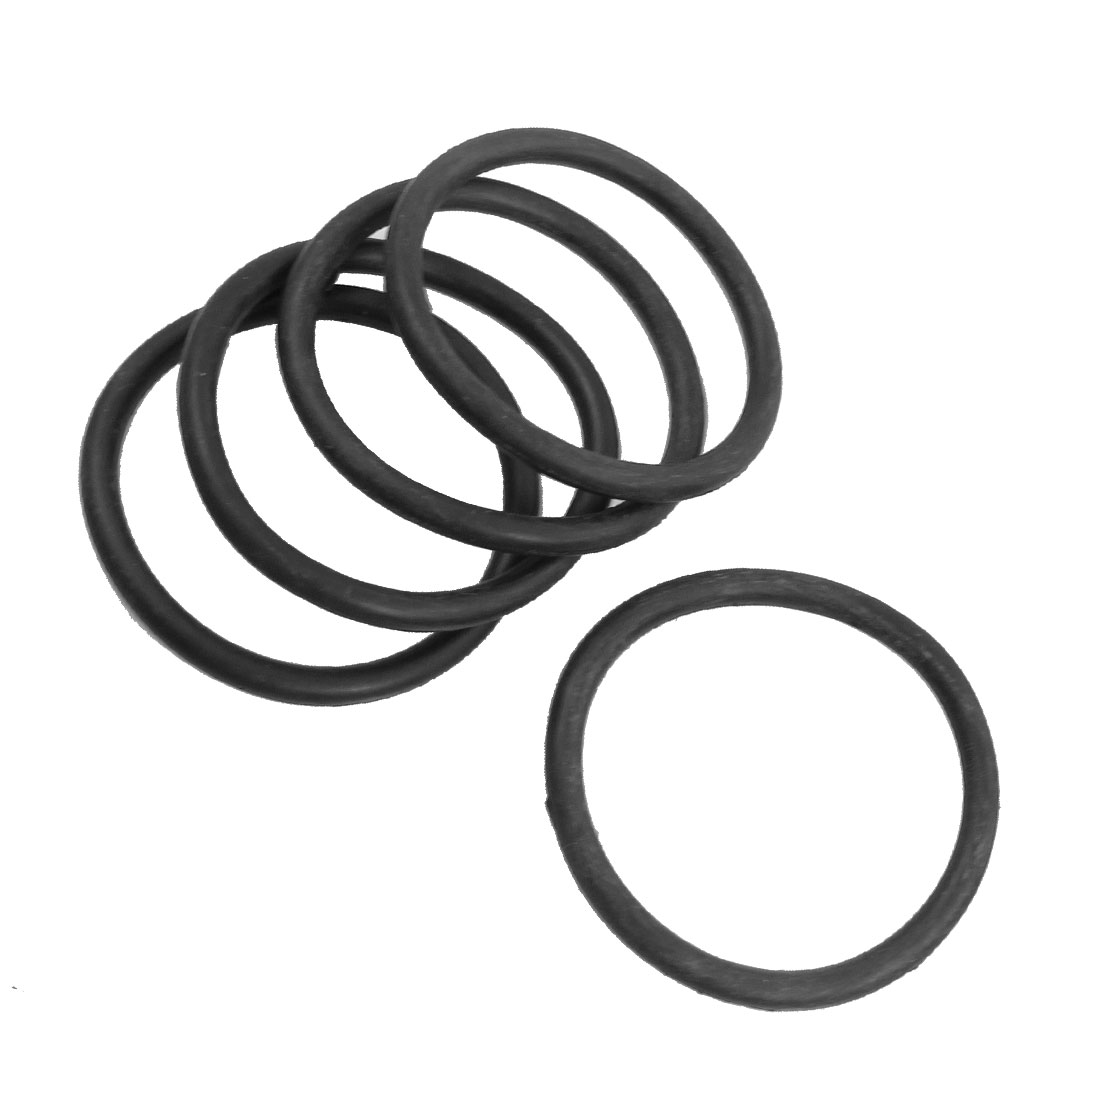 5 Pcs 60mm x 5mm Rubber Sealing Oil Filter O Rings Gaskets Black